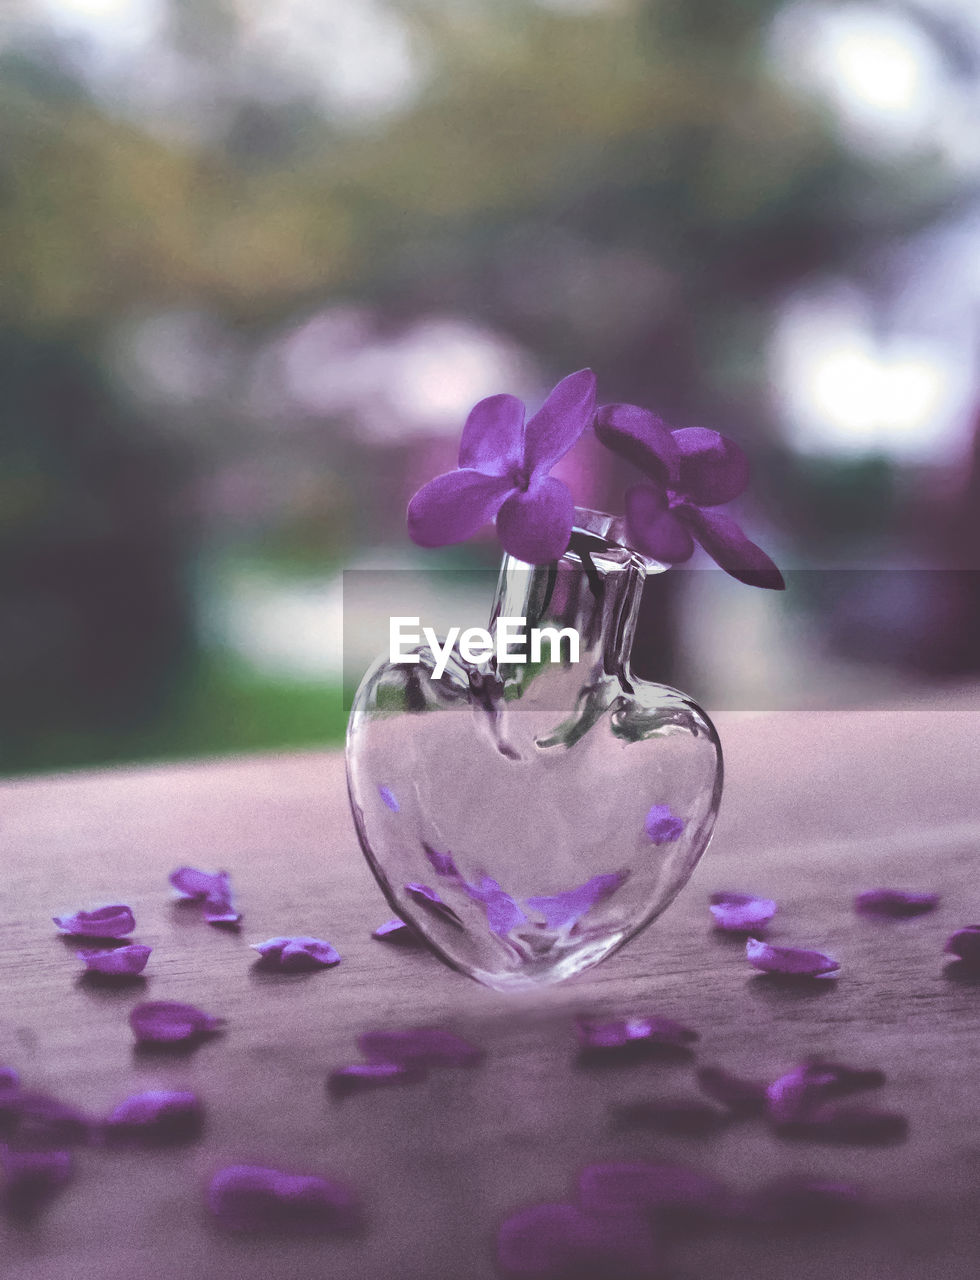 flower, flowering plant, plant, purple, close-up, glass - material, table, beauty in nature, nature, selective focus, freshness, vulnerability, no people, fragility, petal, transparent, focus on foreground, pink color, day, outdoors, flower head, glass